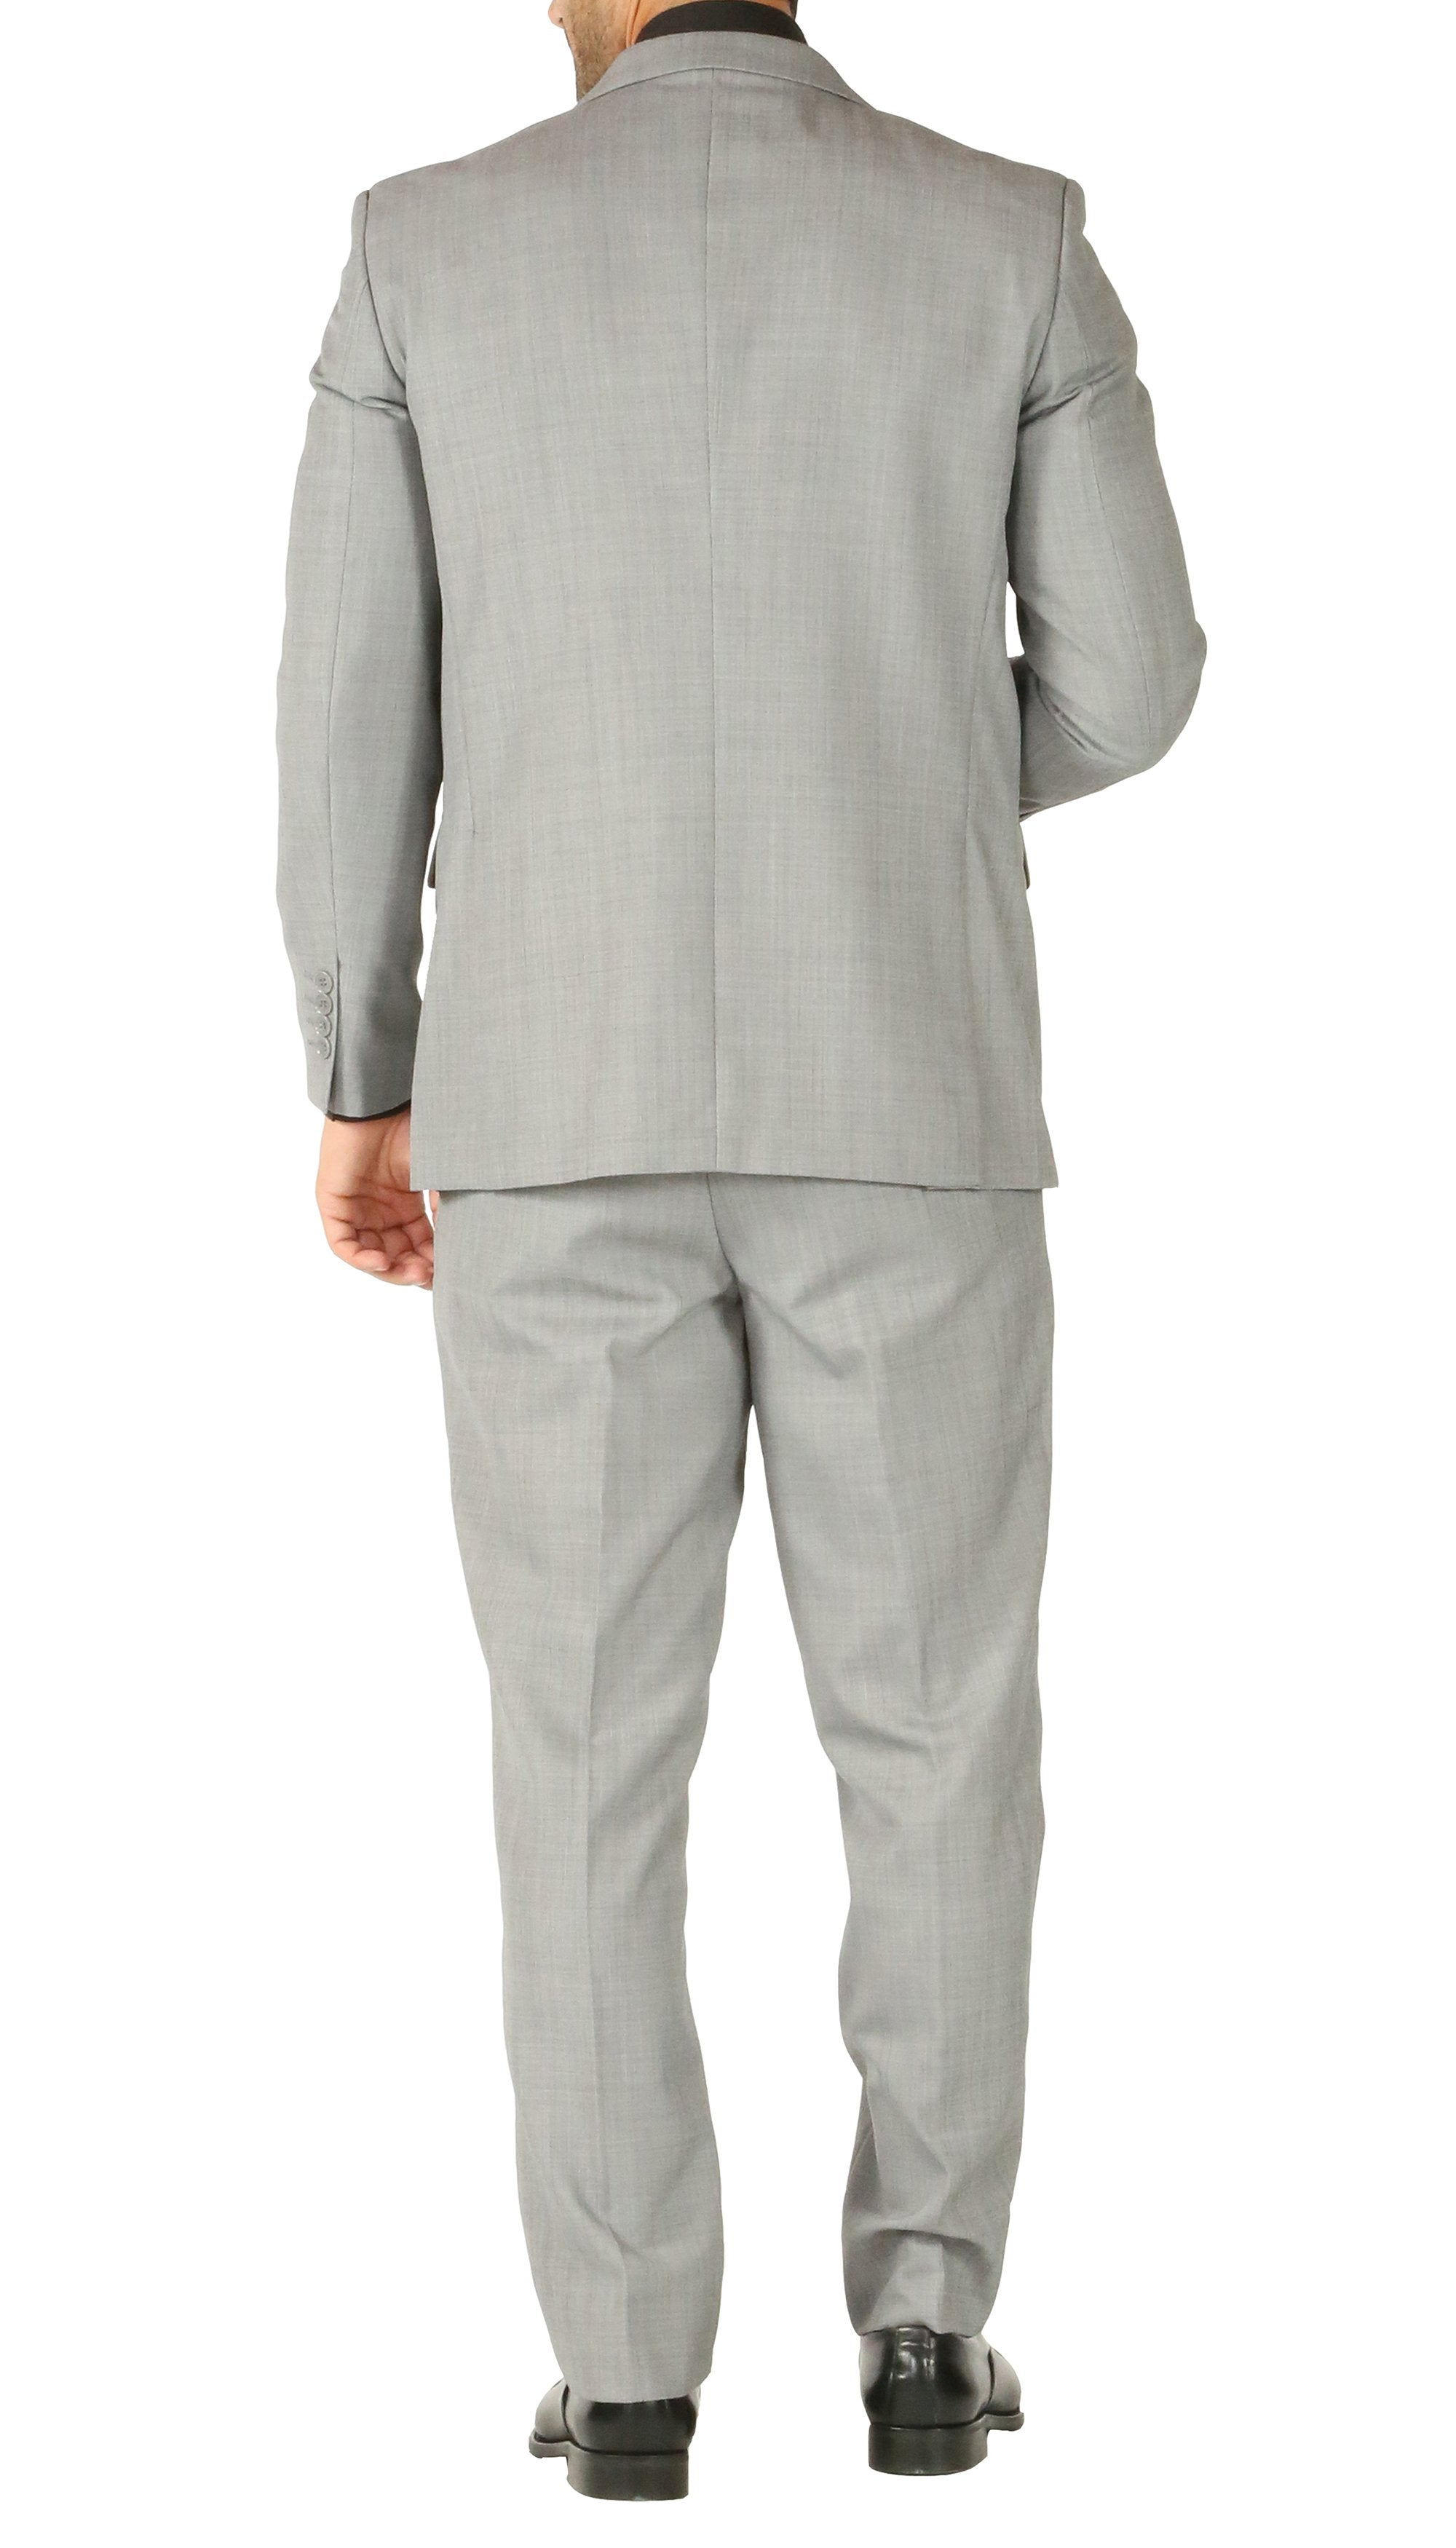 Rod Premium Light Grey Wool 2pc Stain Resistant Traveler Suit - w 2 Pairs of Pants - Giorgio's Menswear